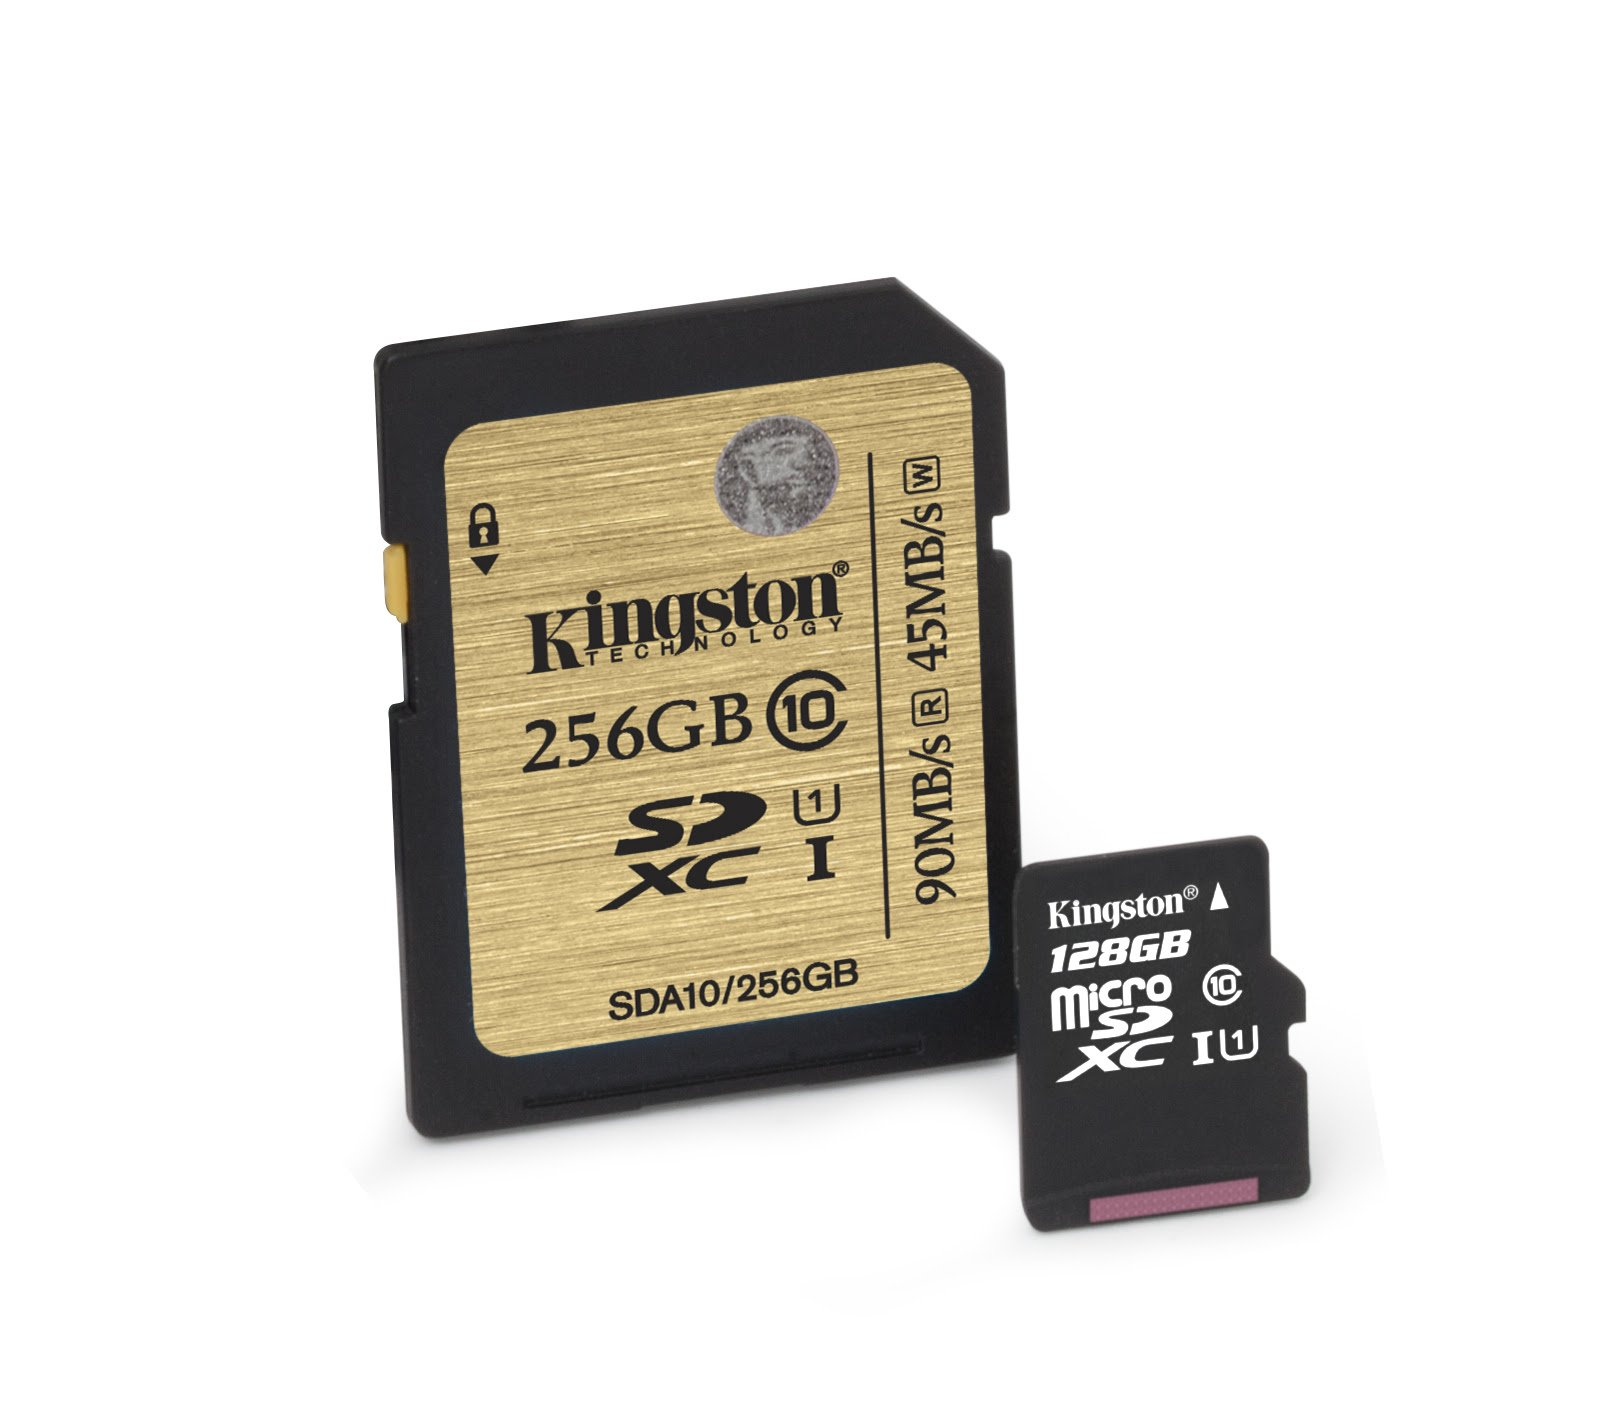 Kingston Doubles Storage Capacity on SD and MicroSD Flash Memory 1